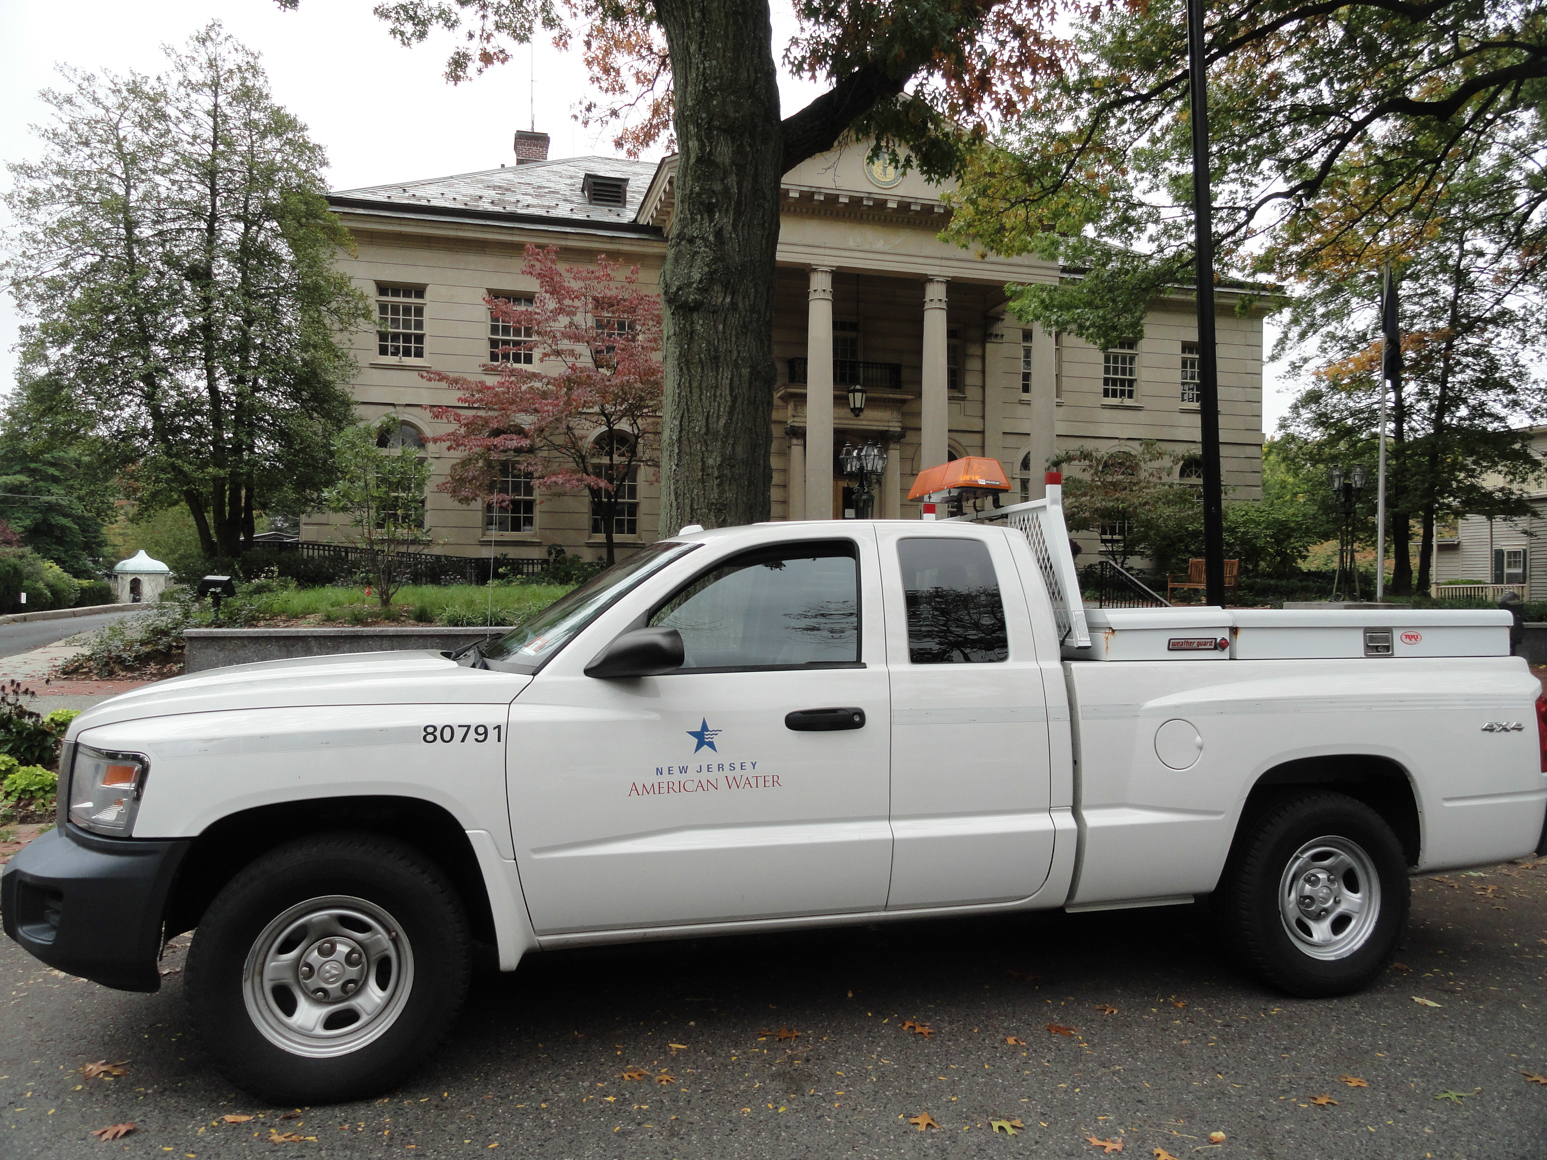 A New Jersey American Water vehicle parked outside of Haddonfield borough hall. Credit: Matt Skoufalos.